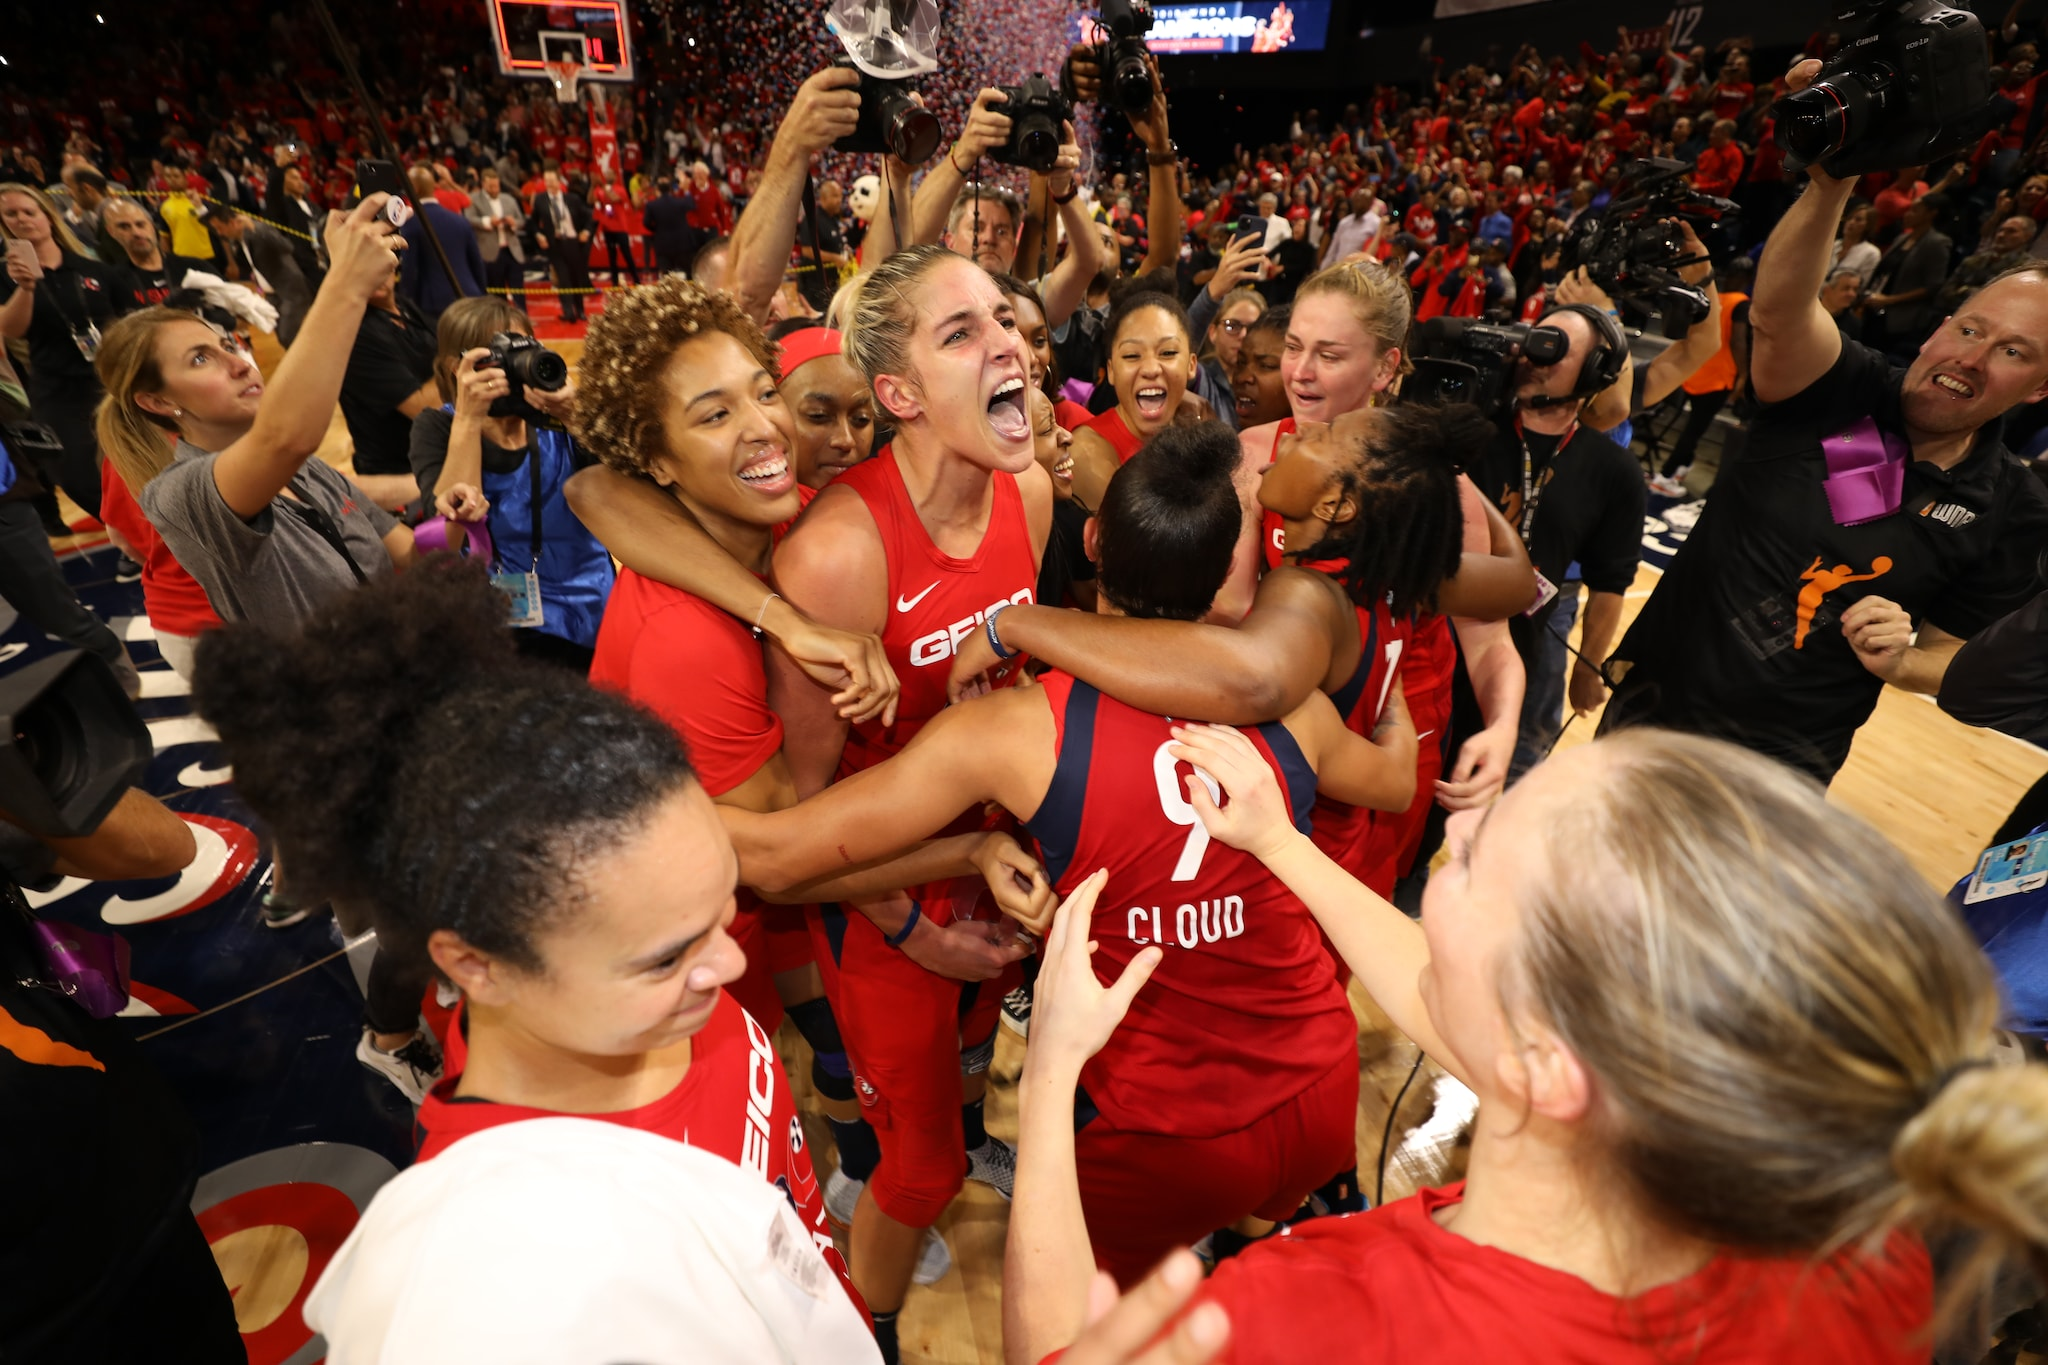 The Mystics celebrate on the court after the final buzzer sounds.